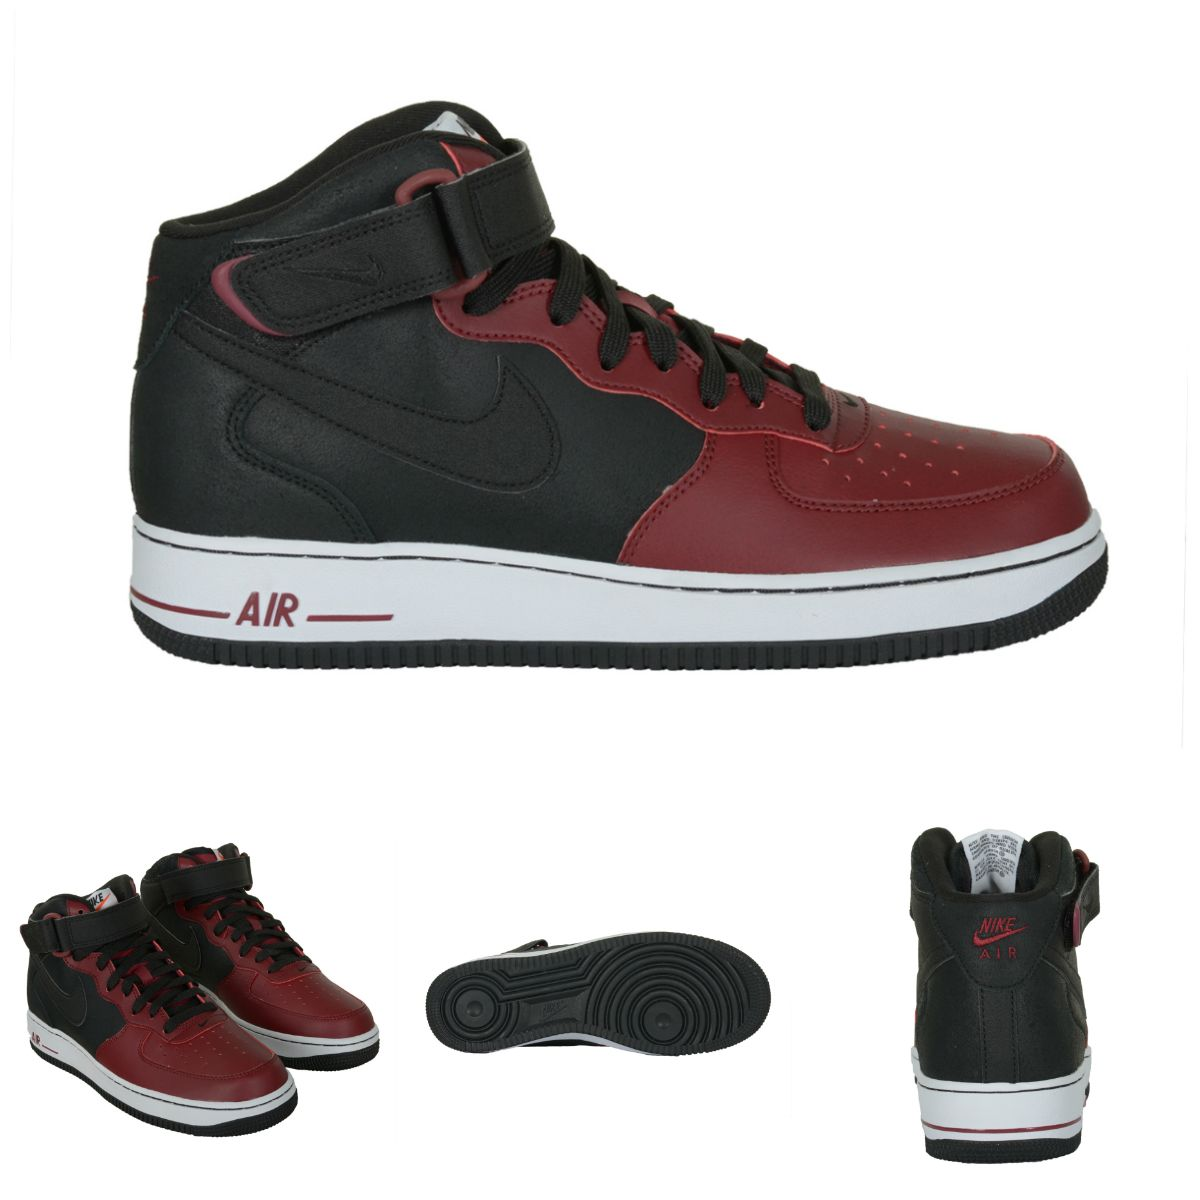 the latest styles by nike nike air force 1 mid 07 high top